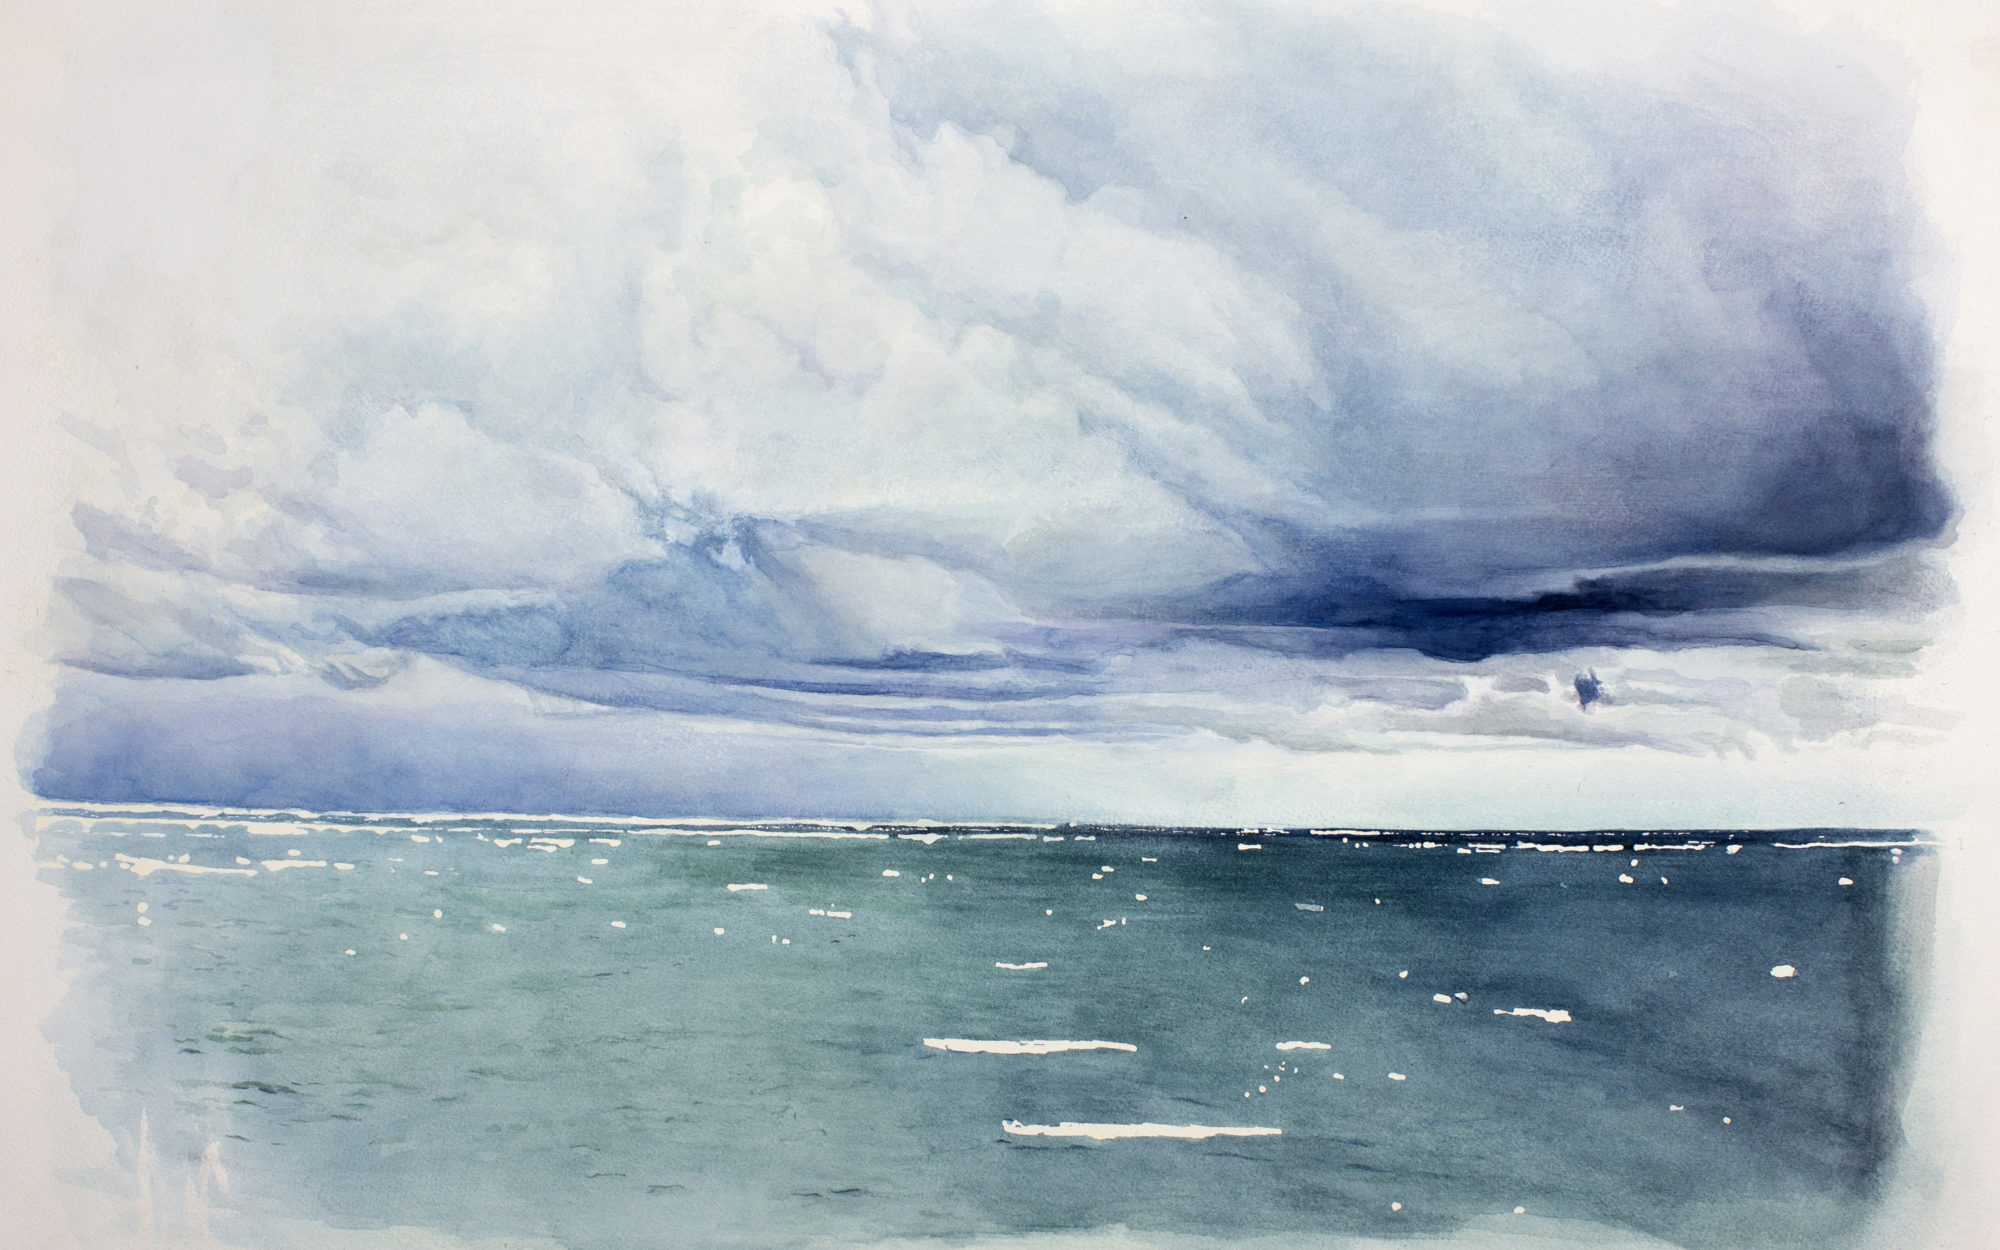 Watercolor of an ocean with a cloudy sky.